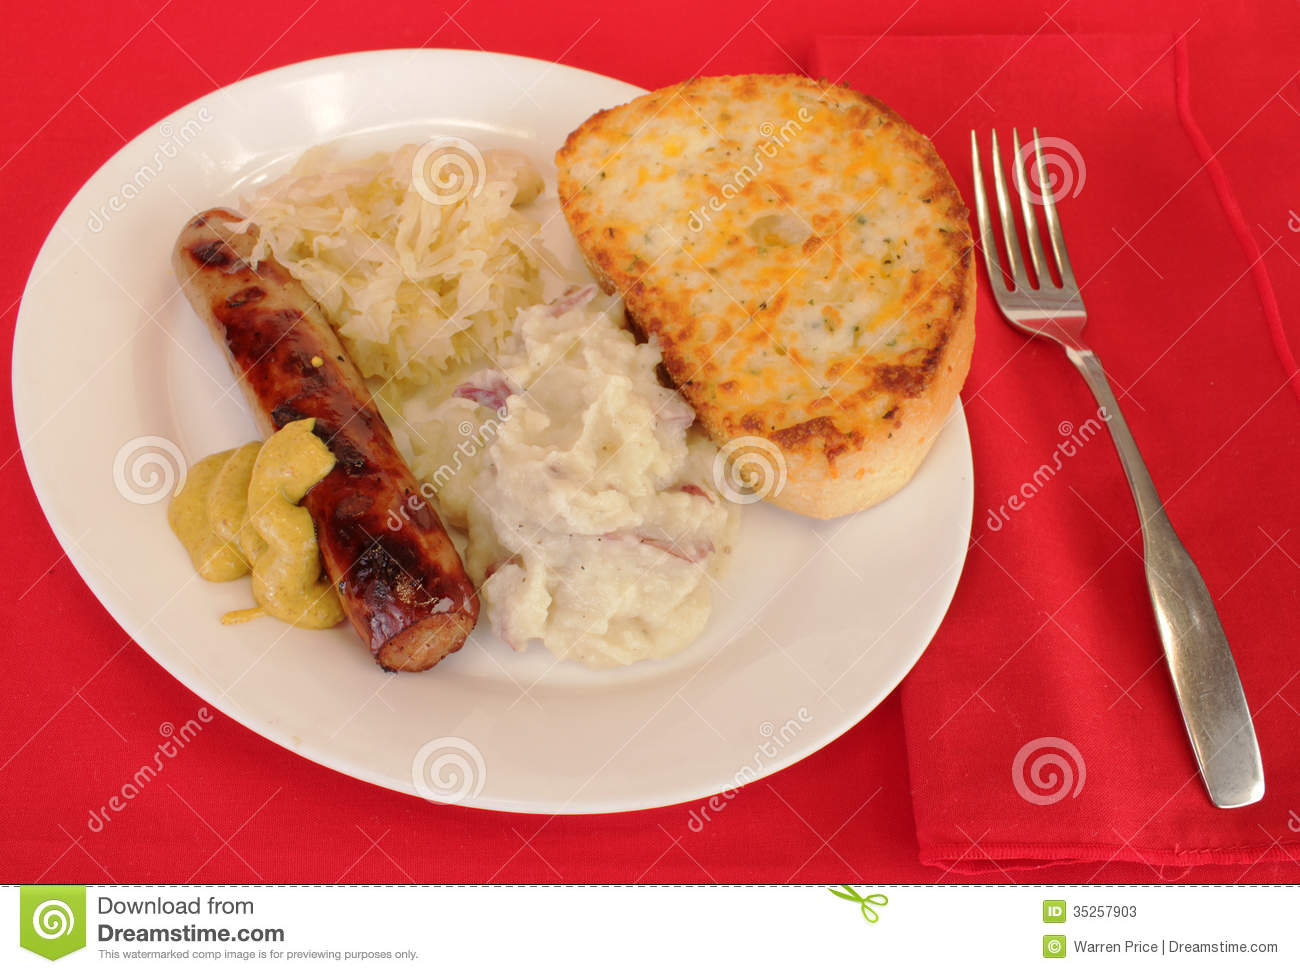 Bratwurst And Sauerkraut Stock Photos - Image: 35257903